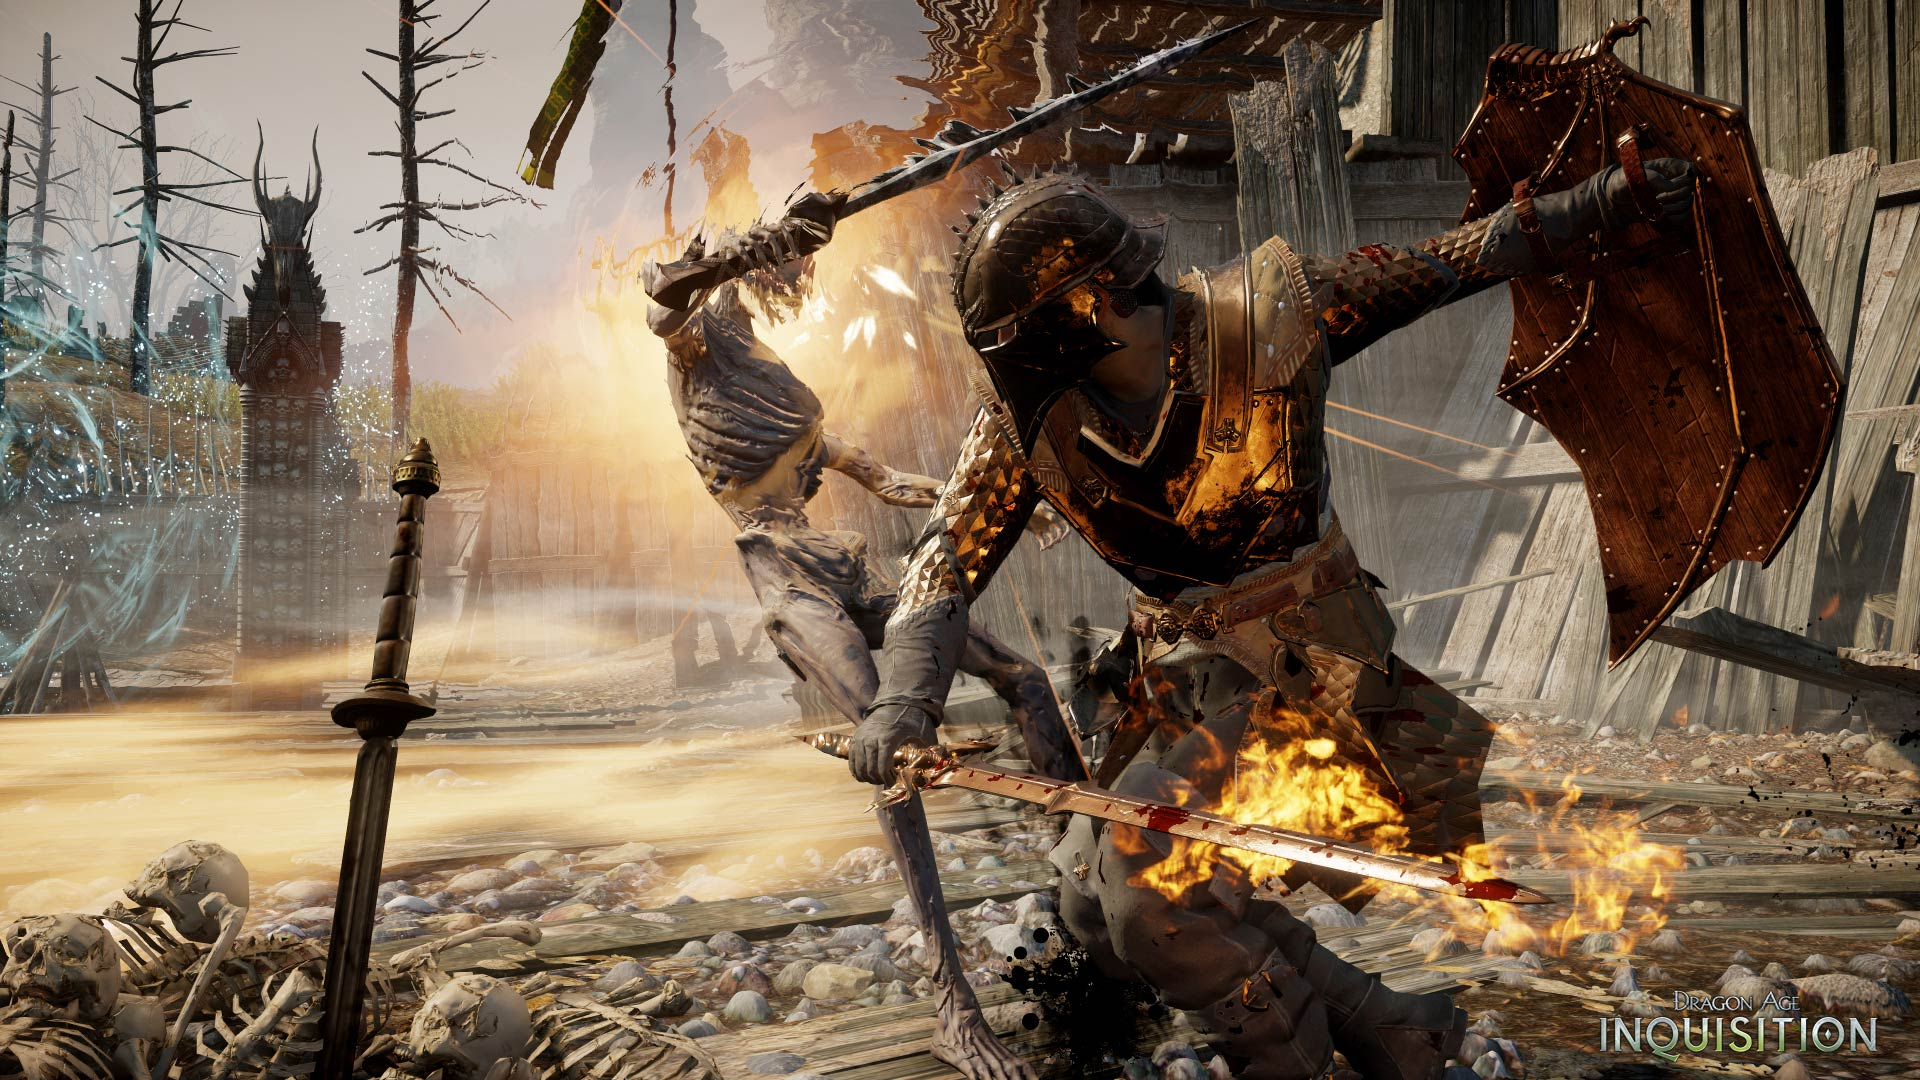 Dragon Age Bioware Video Games Rpg Fantasy Art: Dragon Age: Inquisition Patch 4 Notes